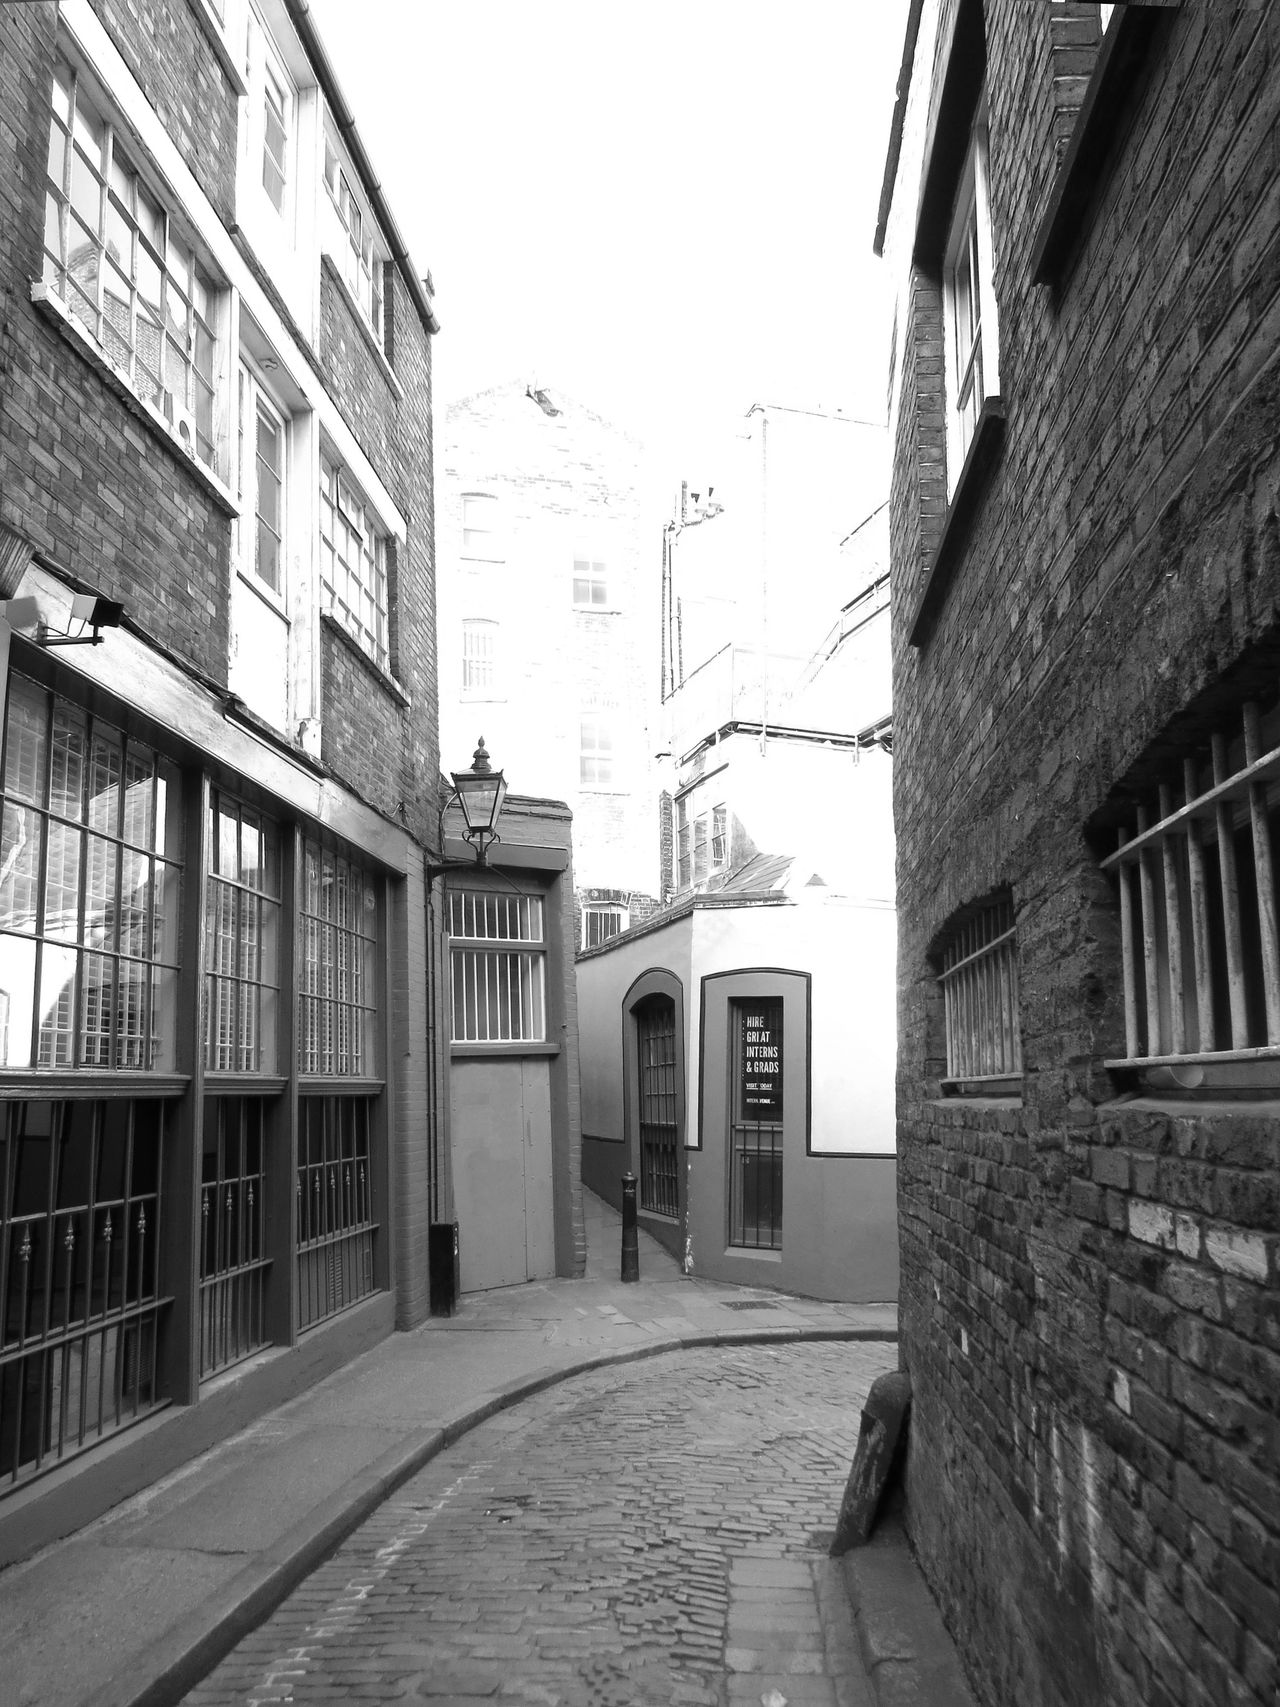 Architecture Back Alley Black And White Black And White Photography Building Exterior Built Structure Day Empty Streets English Architecture English Town Light And Shadow Morning Morning Light Narrow Path Narrow Street No People Outdoors Swindon Traditional Architecture Windows